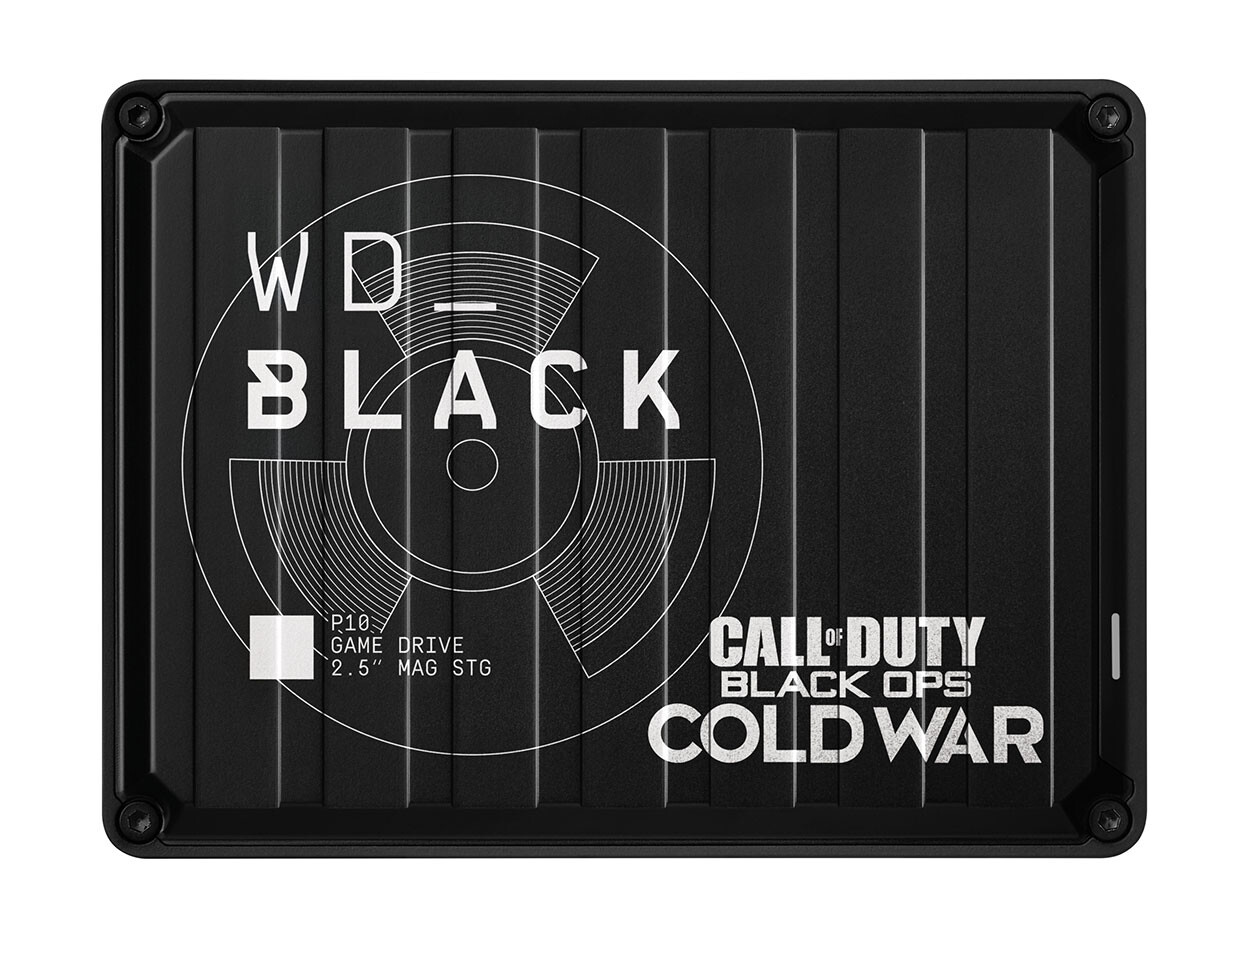 WD Call of Duty Black Ops Cold War